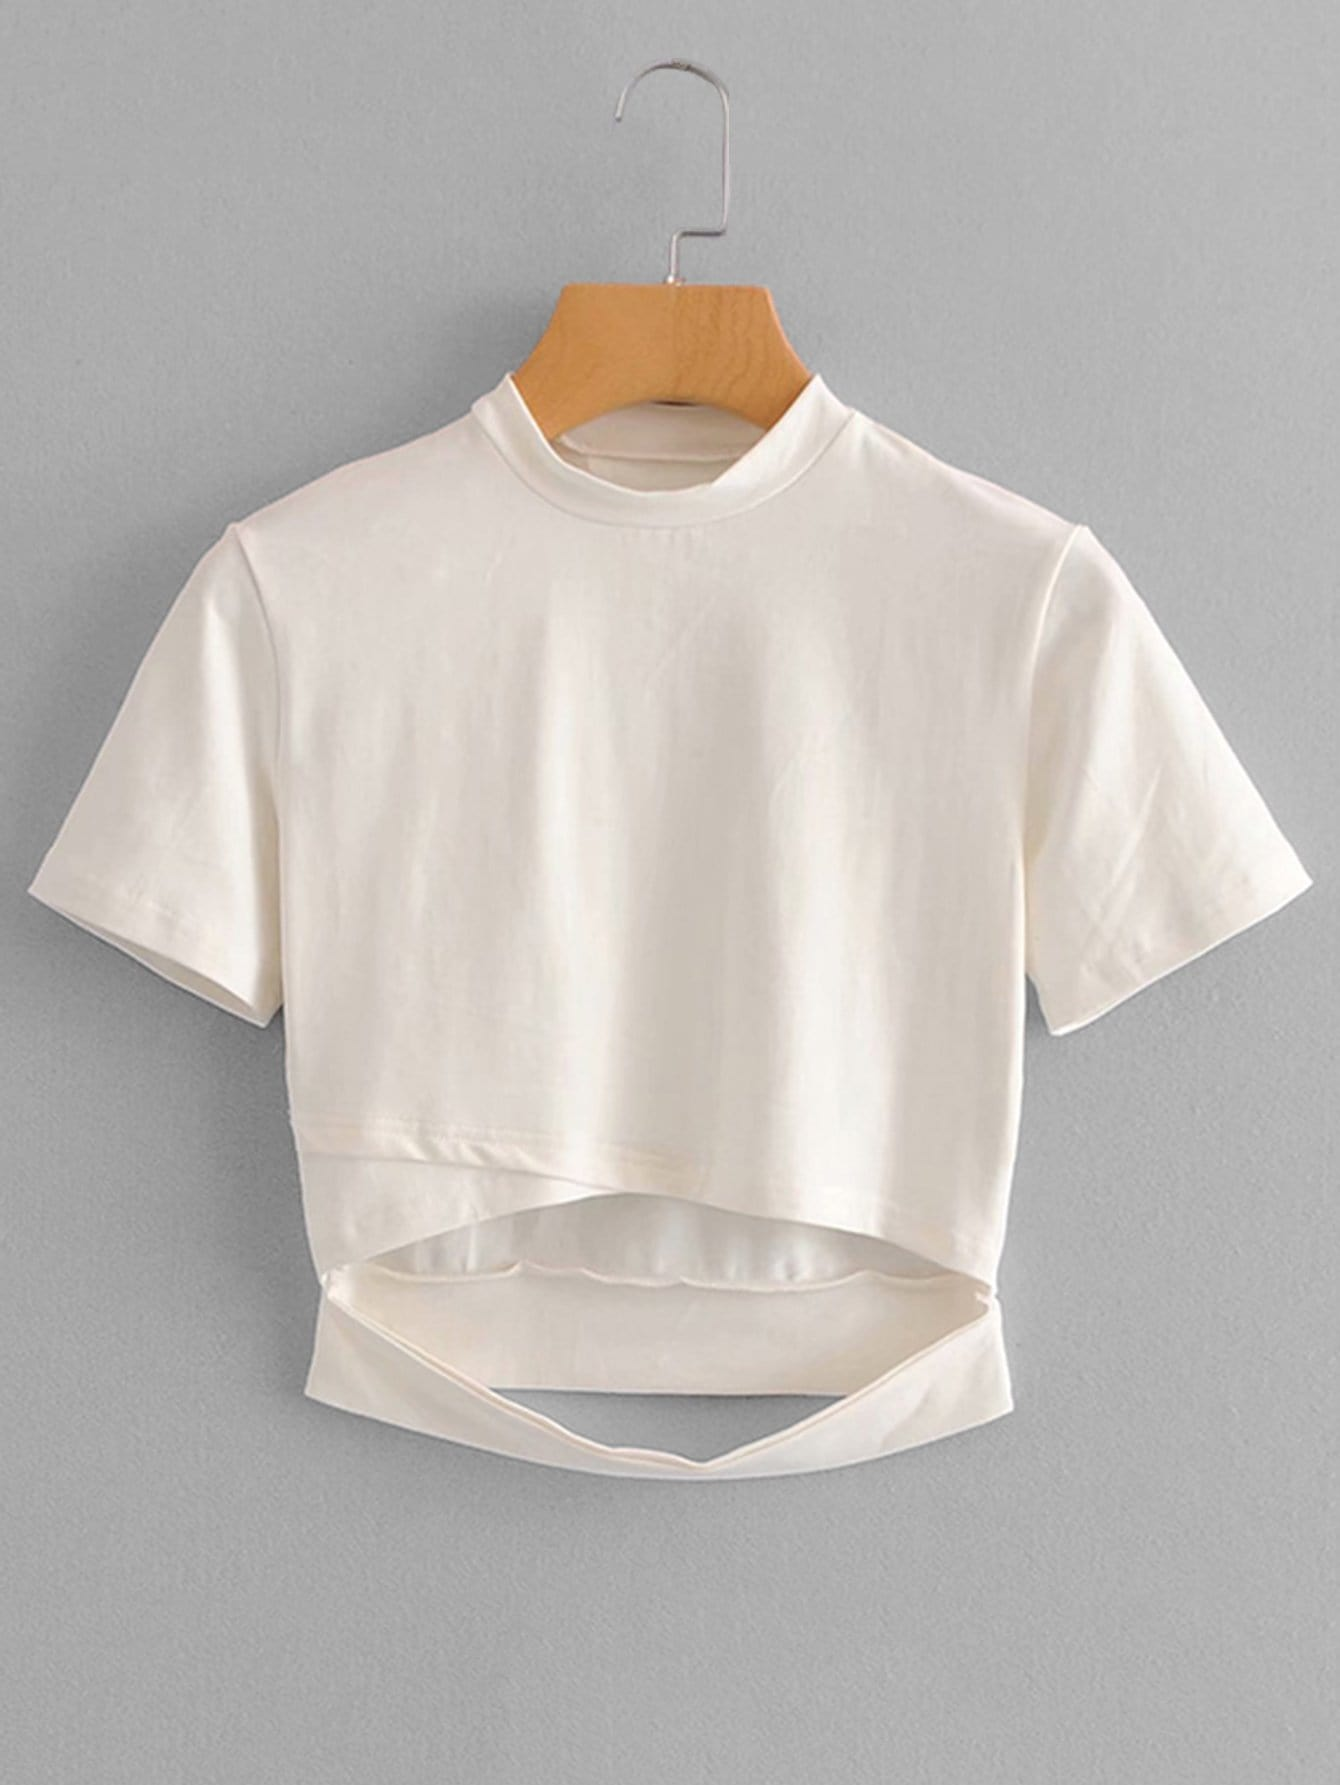 Mock Neck Cut Out Front Crop Tee mock collar sweatshirt cut out top white